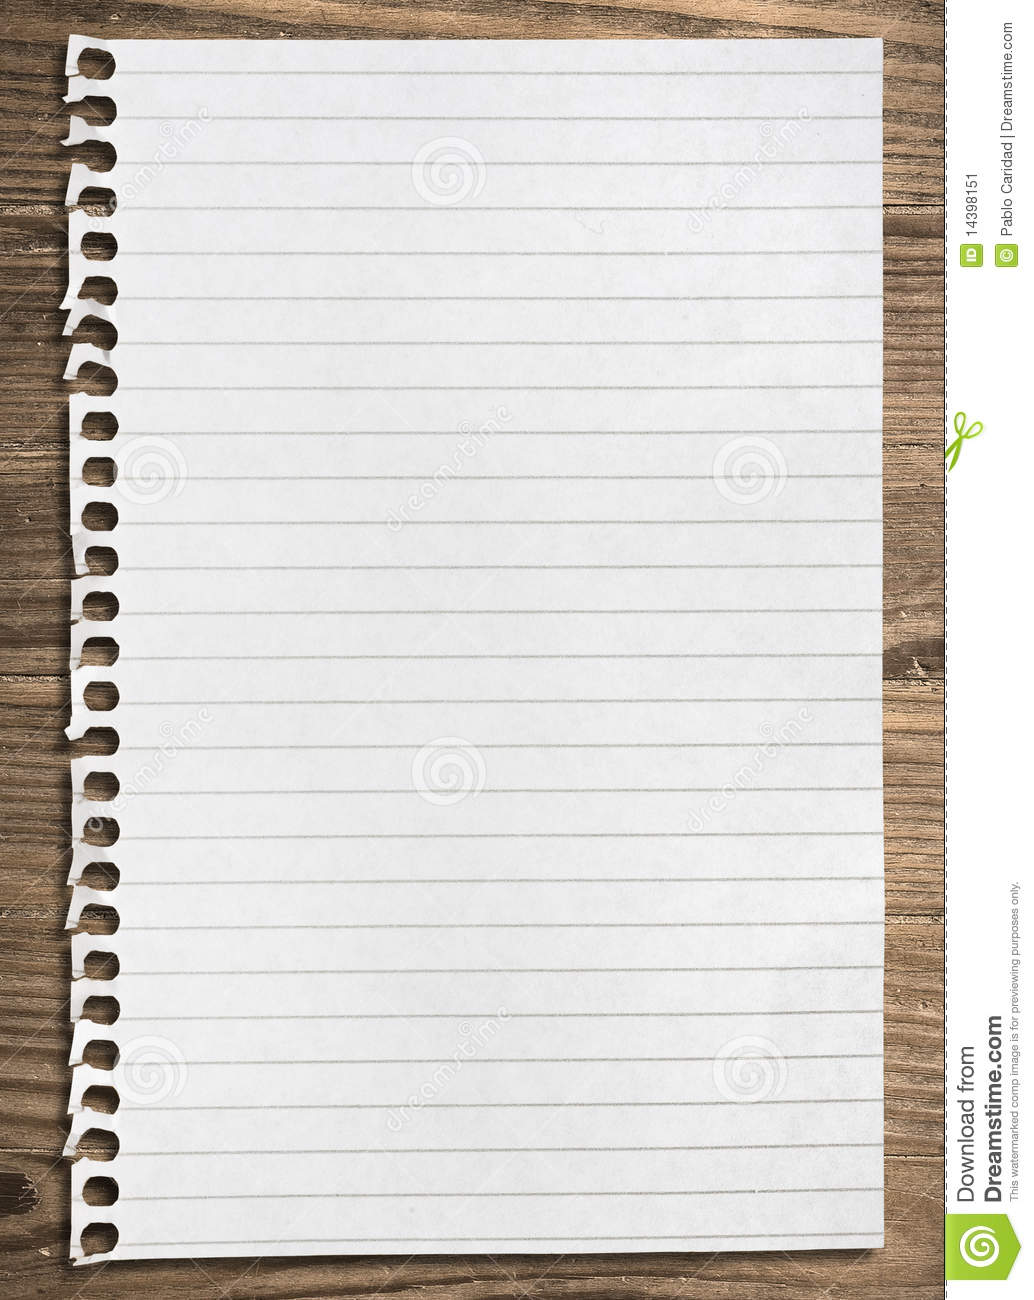 Notebook paper sheet stock image Image of page